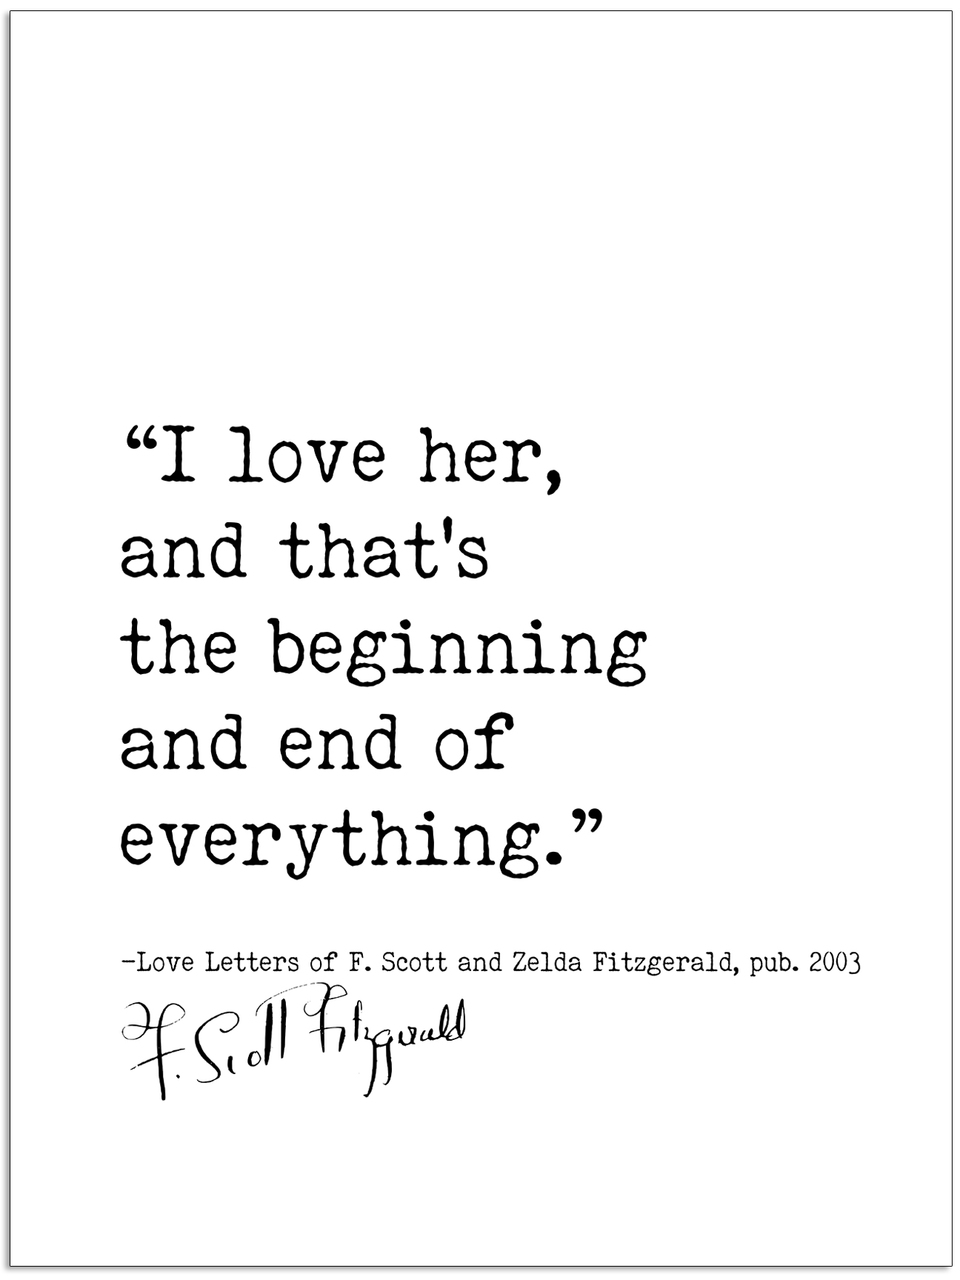 End A Letter With Love.I Love Her And That S The Beginning And End Of Everything Love Letters F Scott And Zelda Fitzgerald Author Signature Literary Quote Print Fine